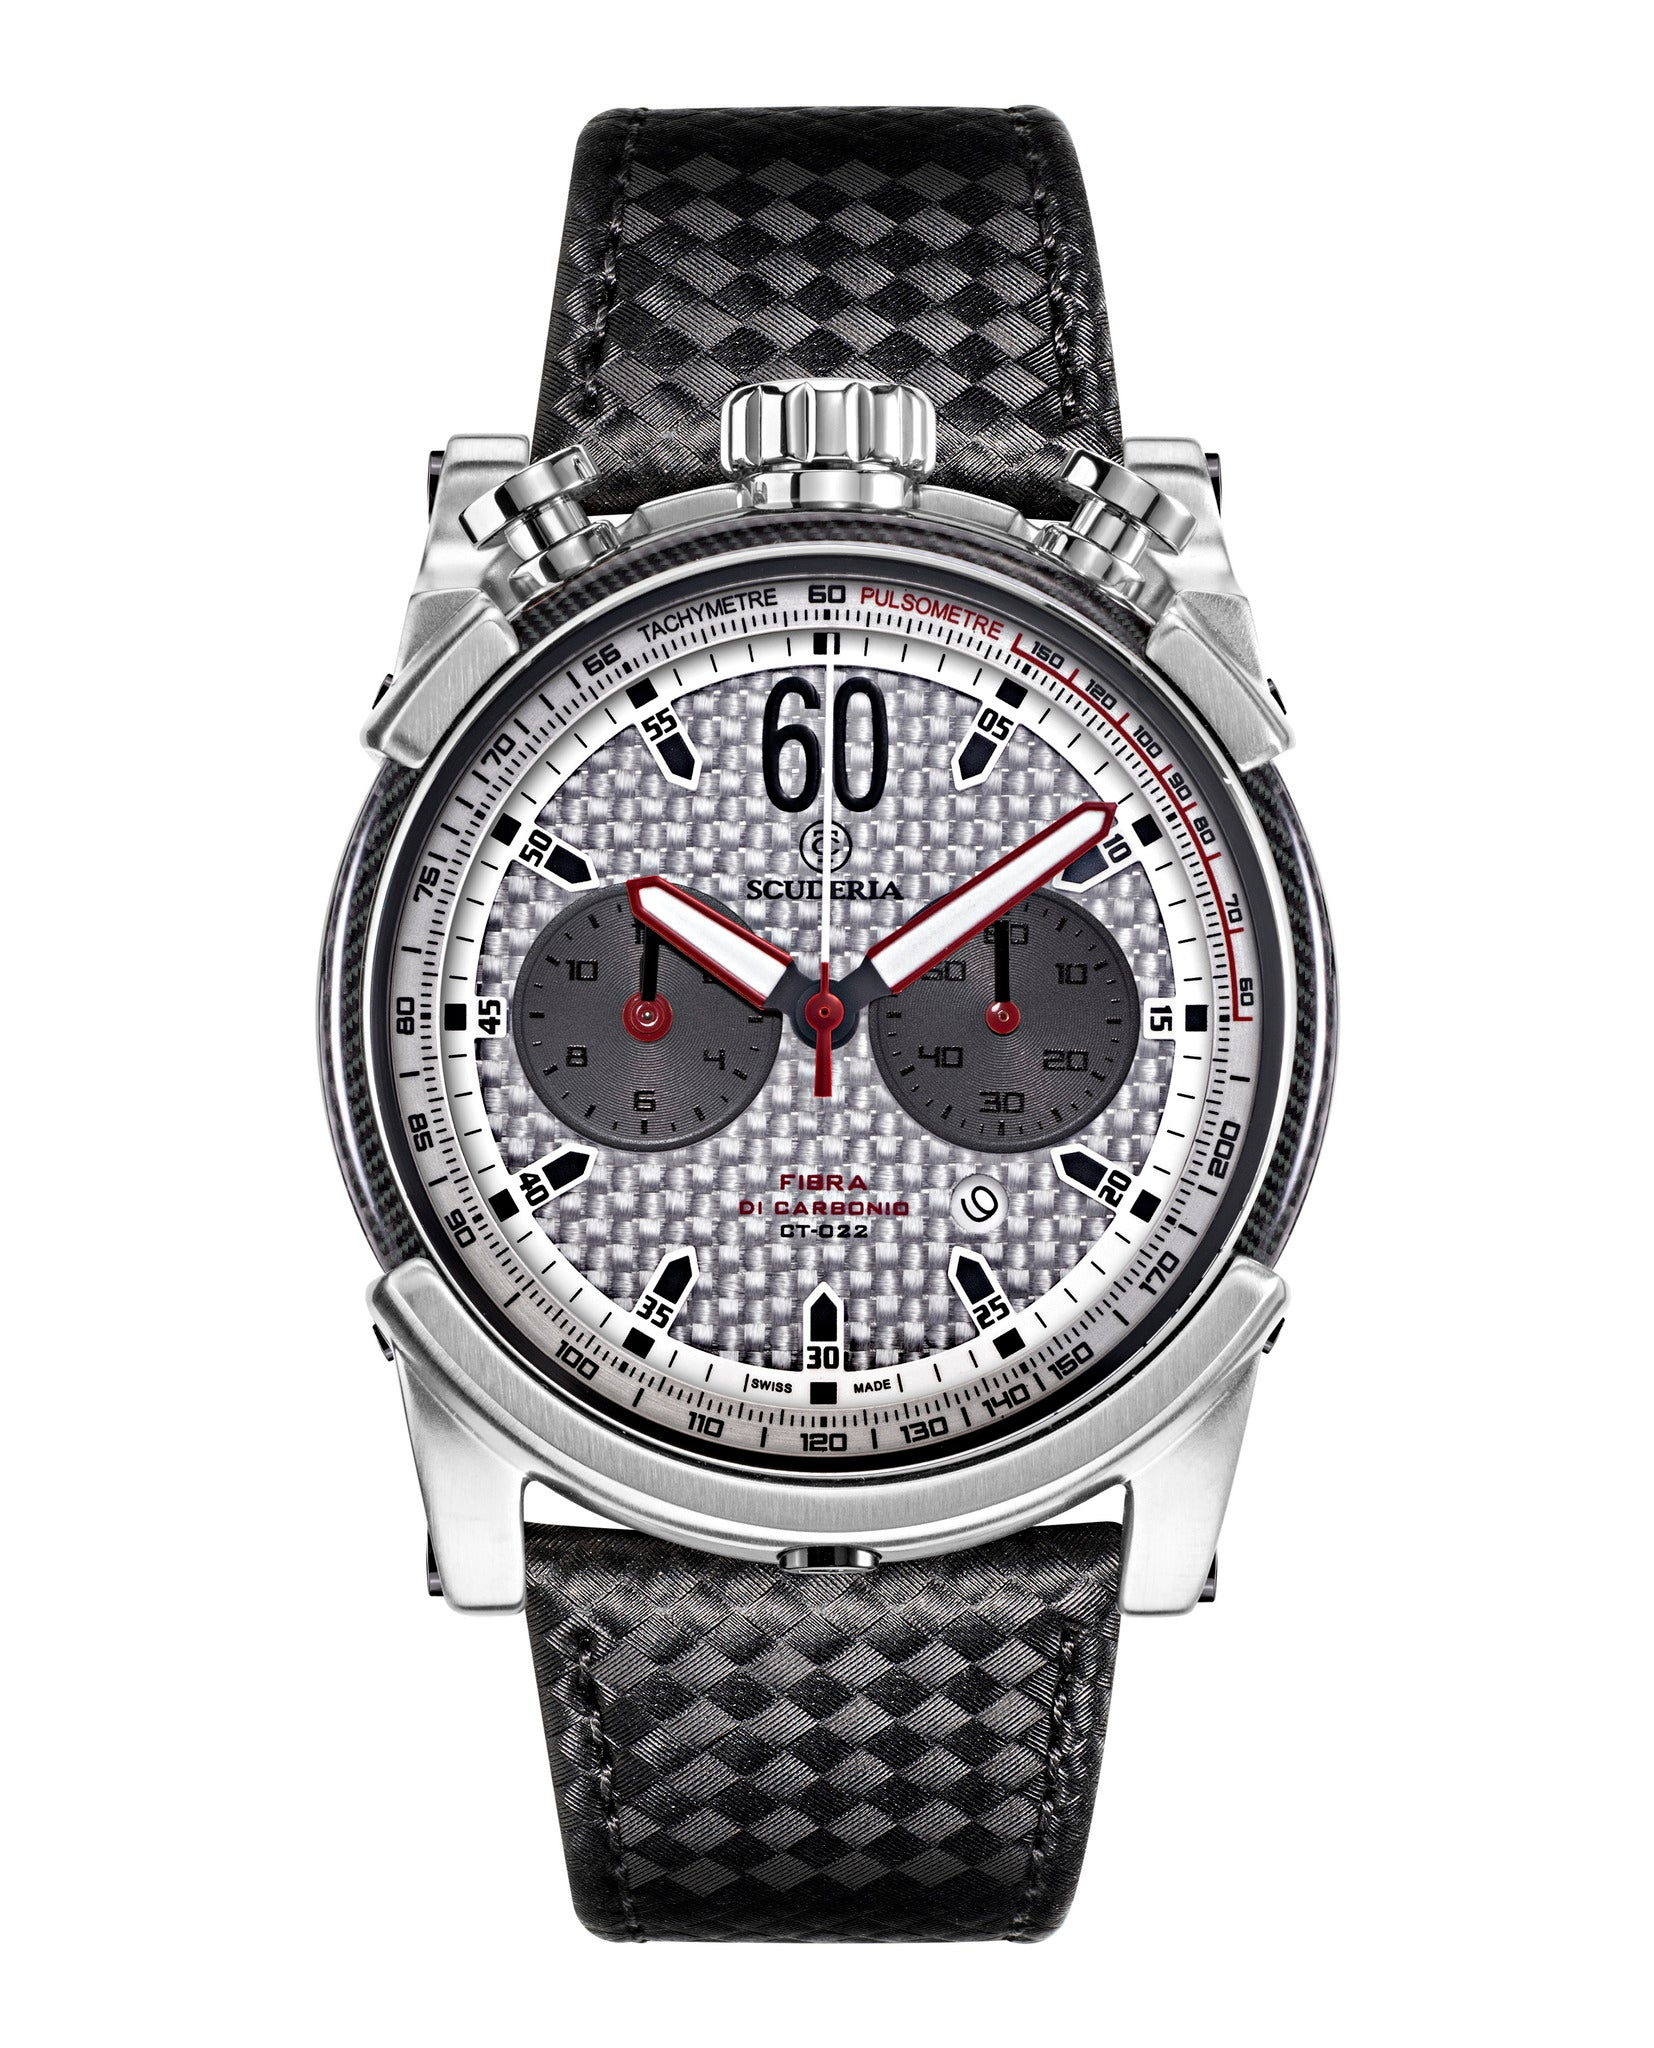 CT Scuderia Carbon Fiber Watch